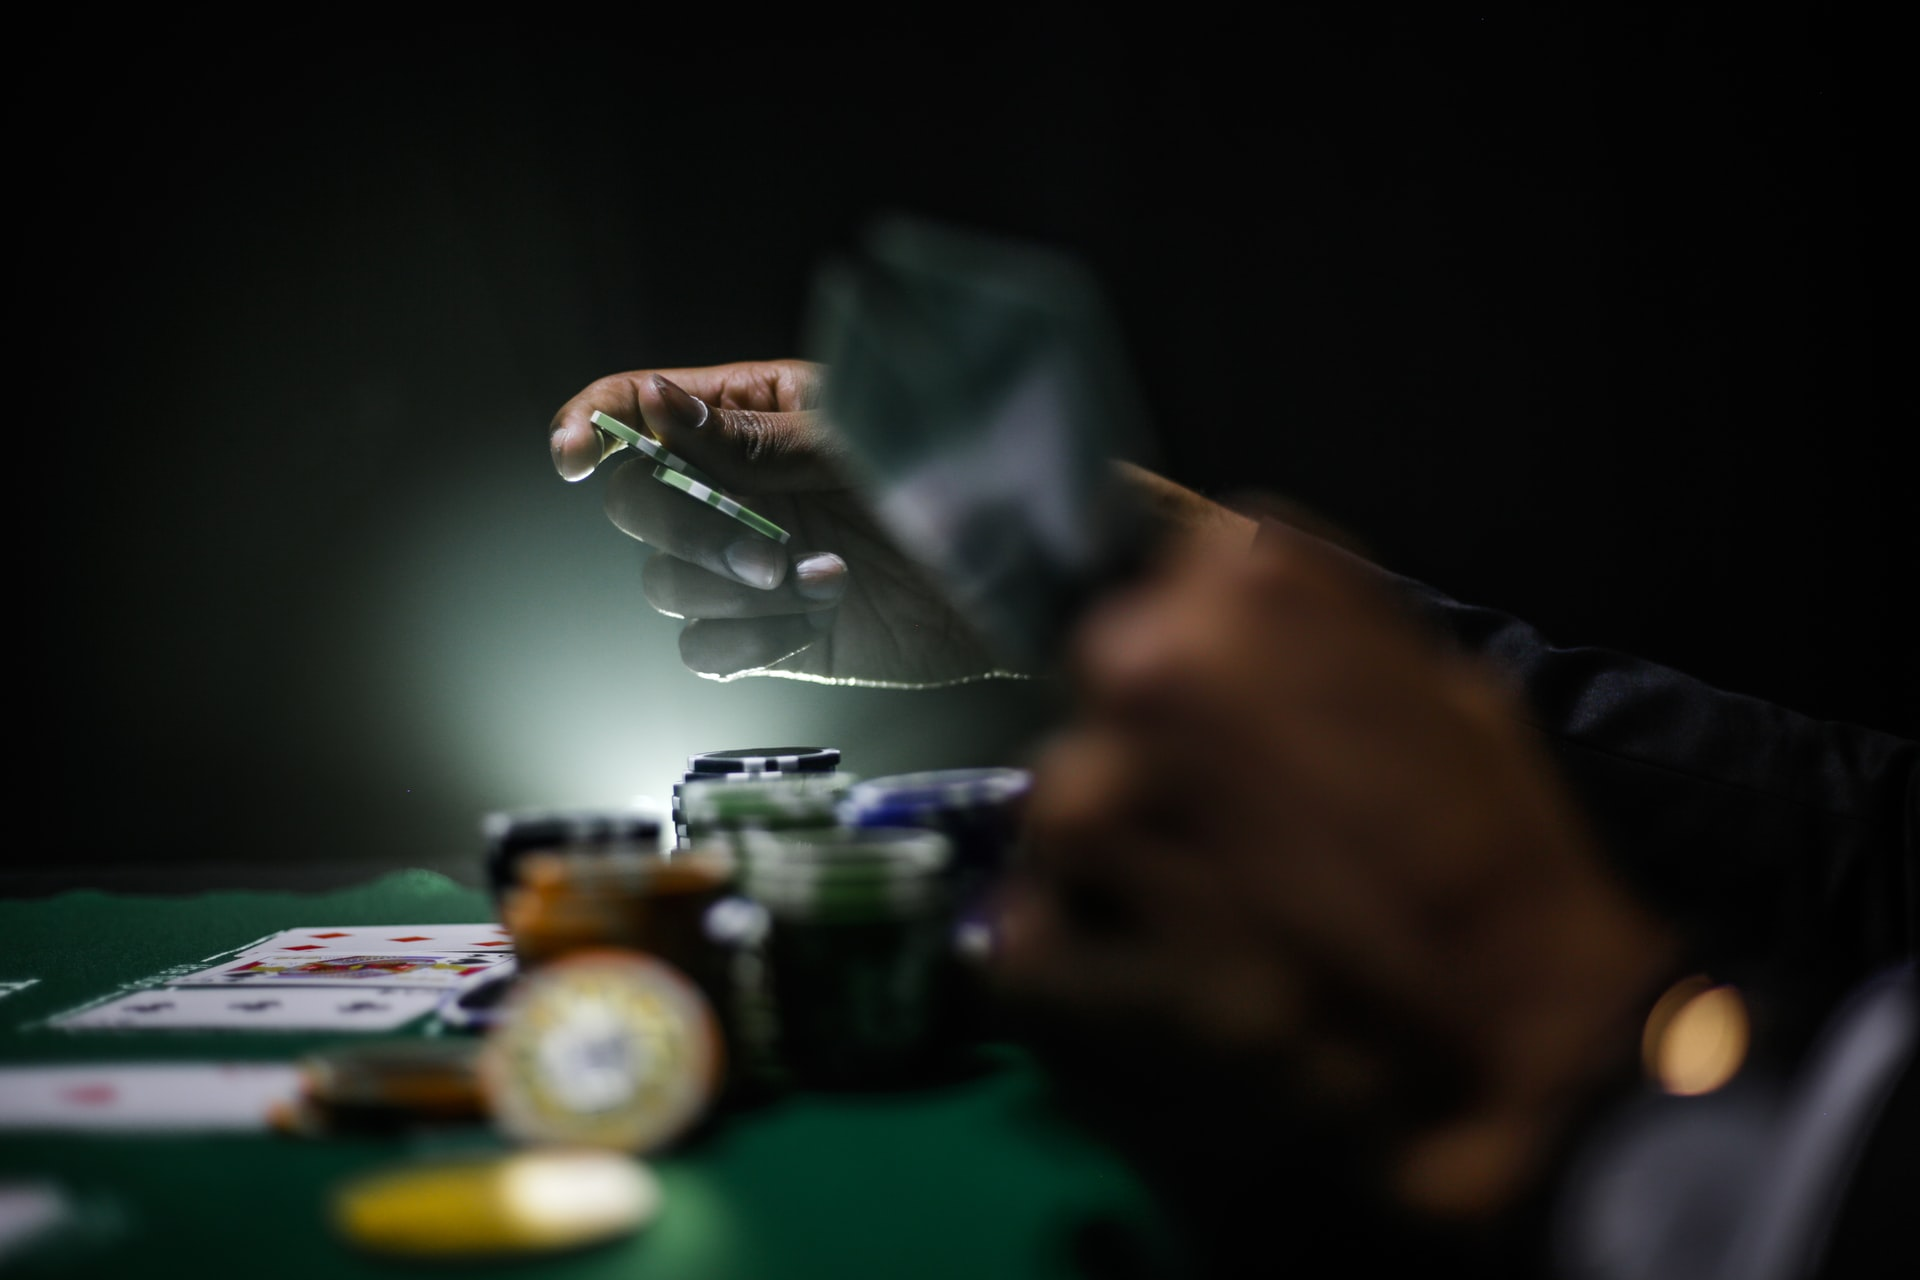 casino deposit options - Know Your Deposit Options for Online Casinos